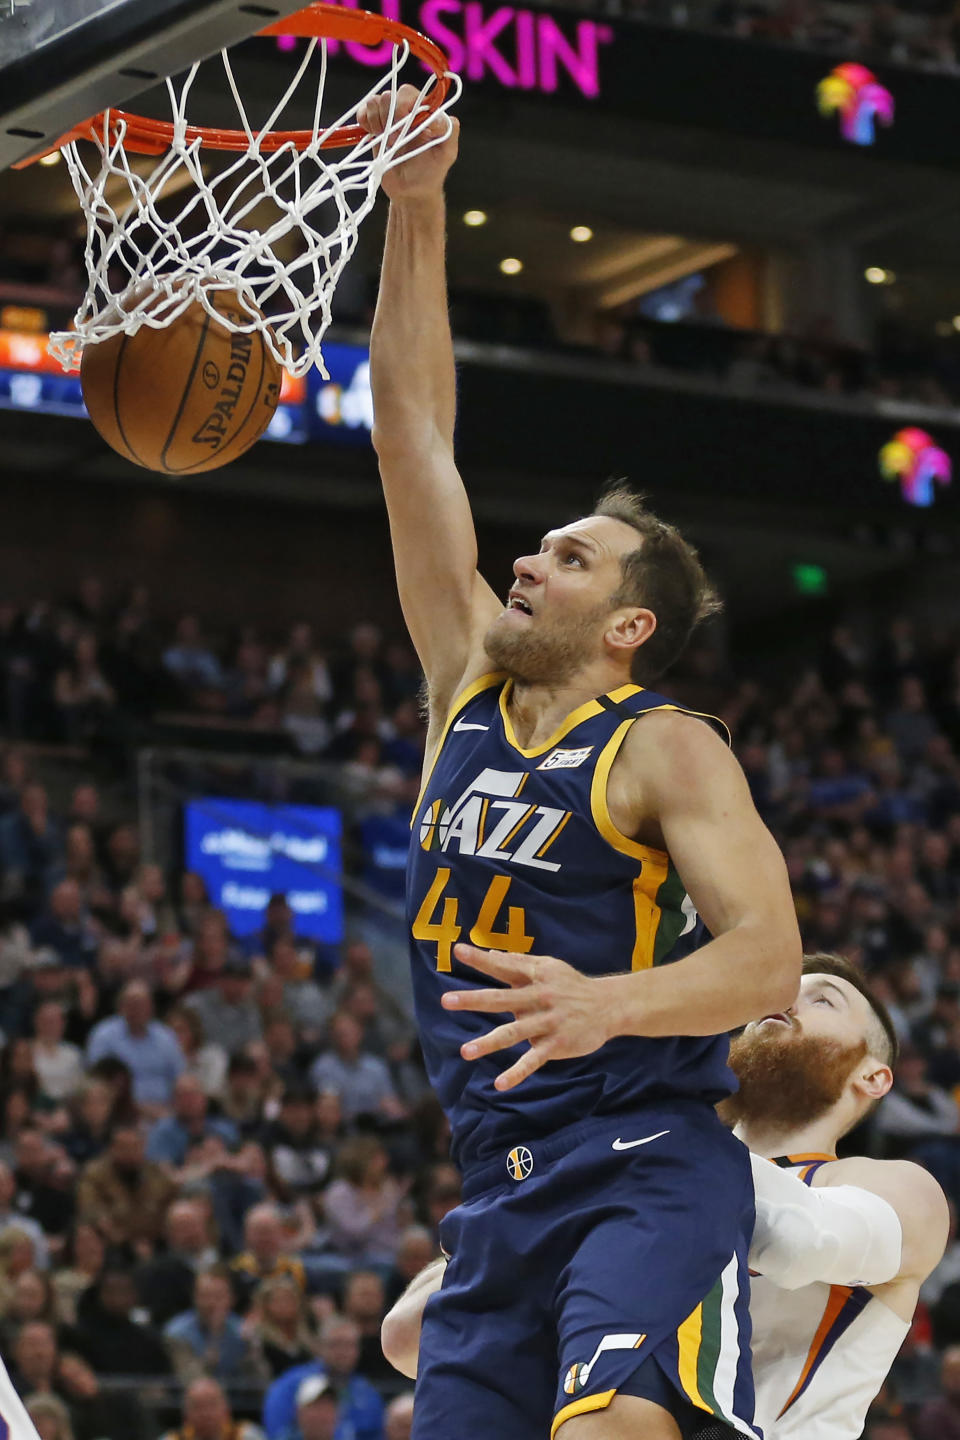 Utah Jazz forward Bojan Bogdanovic (44) dunks against Phoenix Suns center Aron Baynes, bottom right, in the first half during an NBA basketball game Monday, Feb. 24, 2020, in Salt Lake City. (AP Photo/Rick Bowmer)